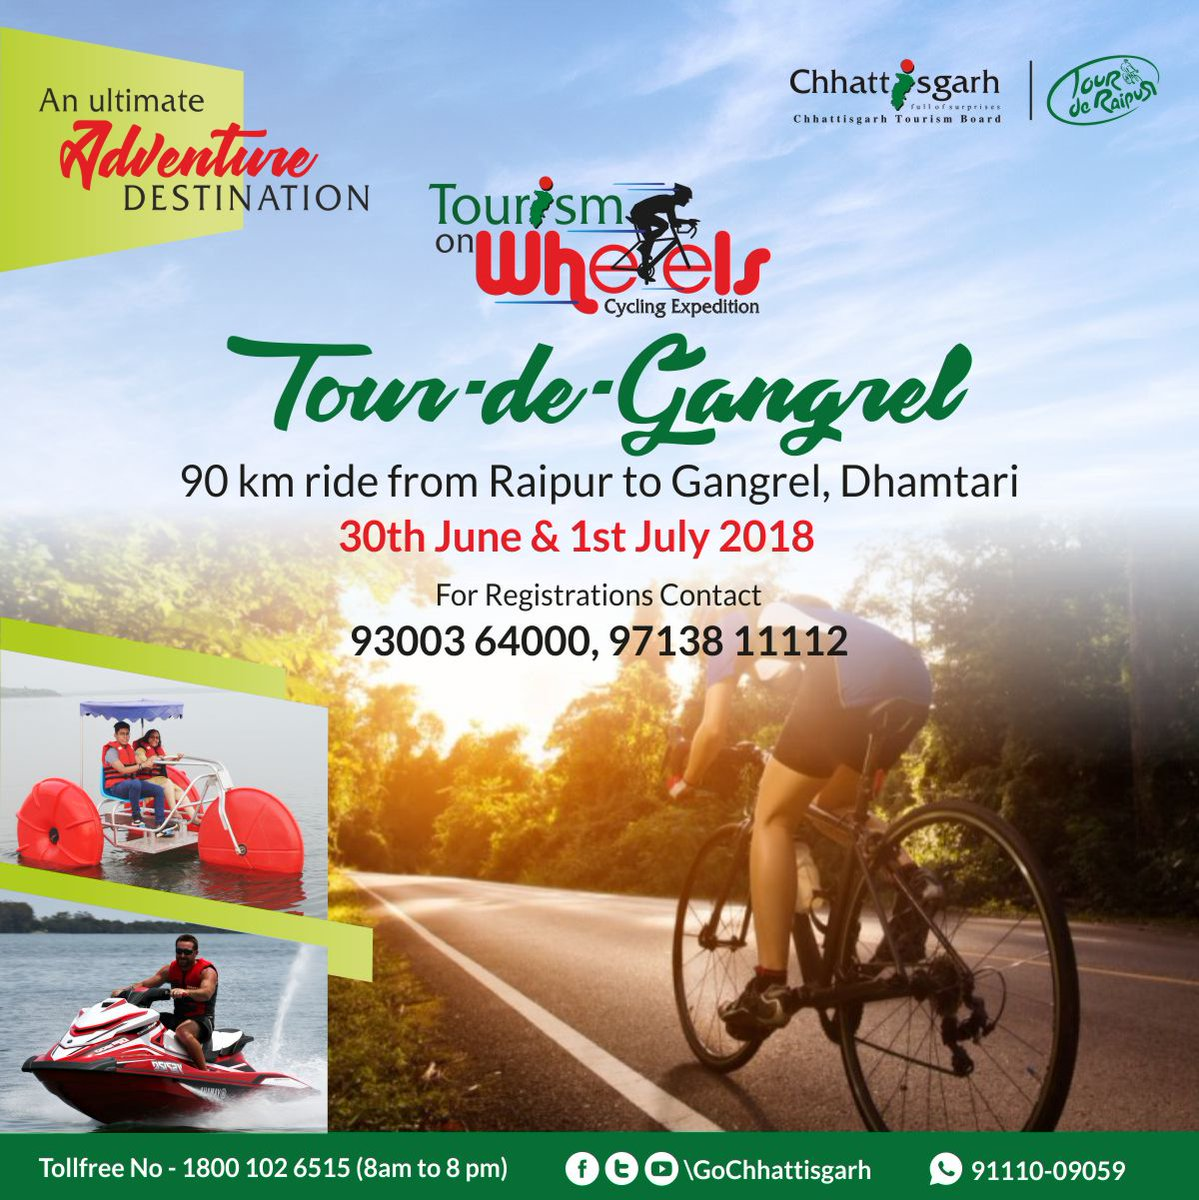 Chhattisgarh Tourism On Twitter If You Love Cycling Water Sports